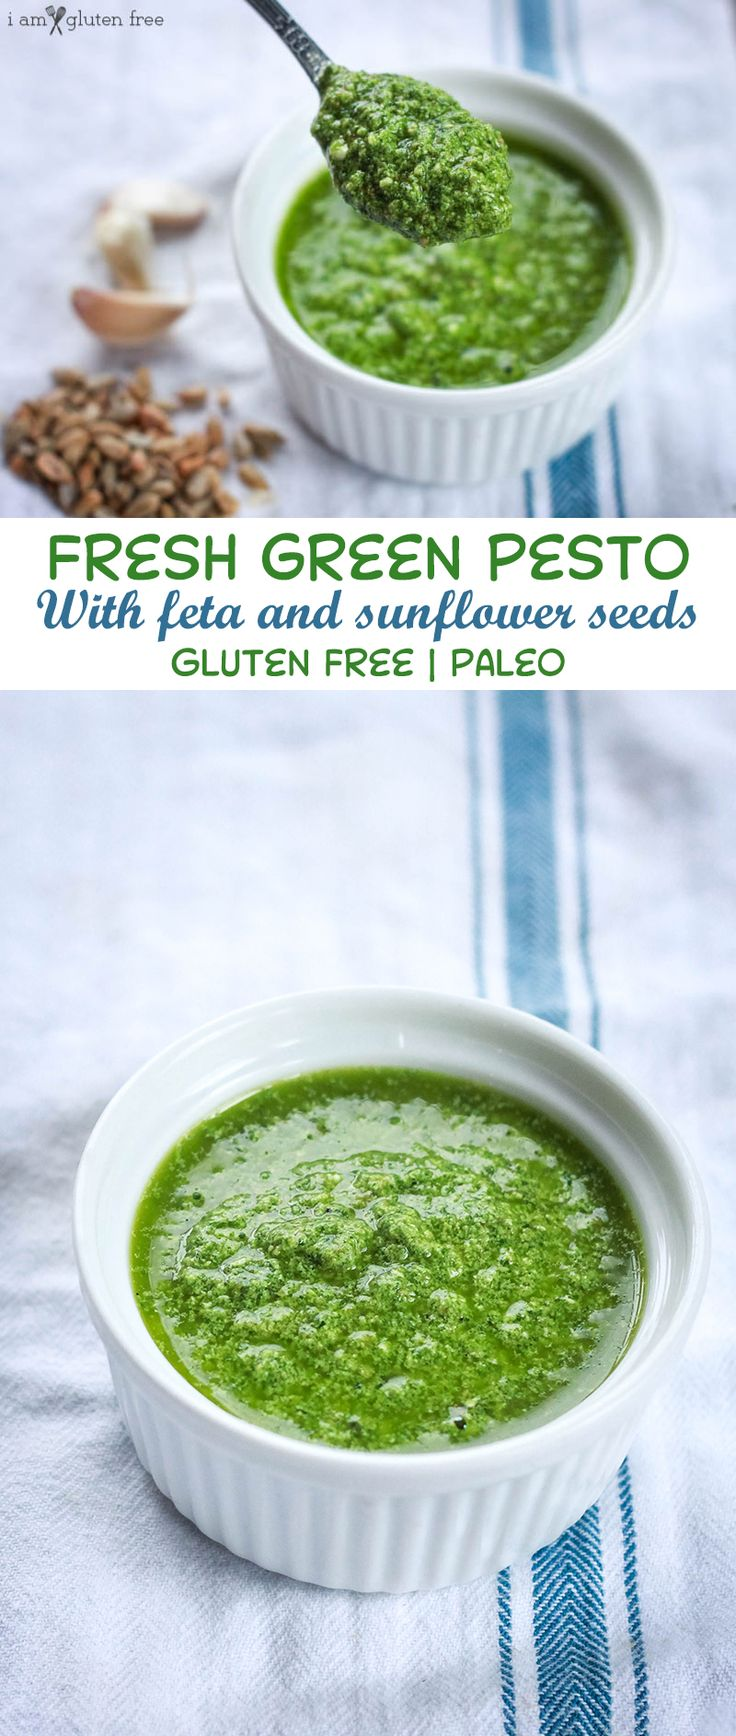 Gluten free and paleo pesto recipe! This is the perfect way to add some fresh…